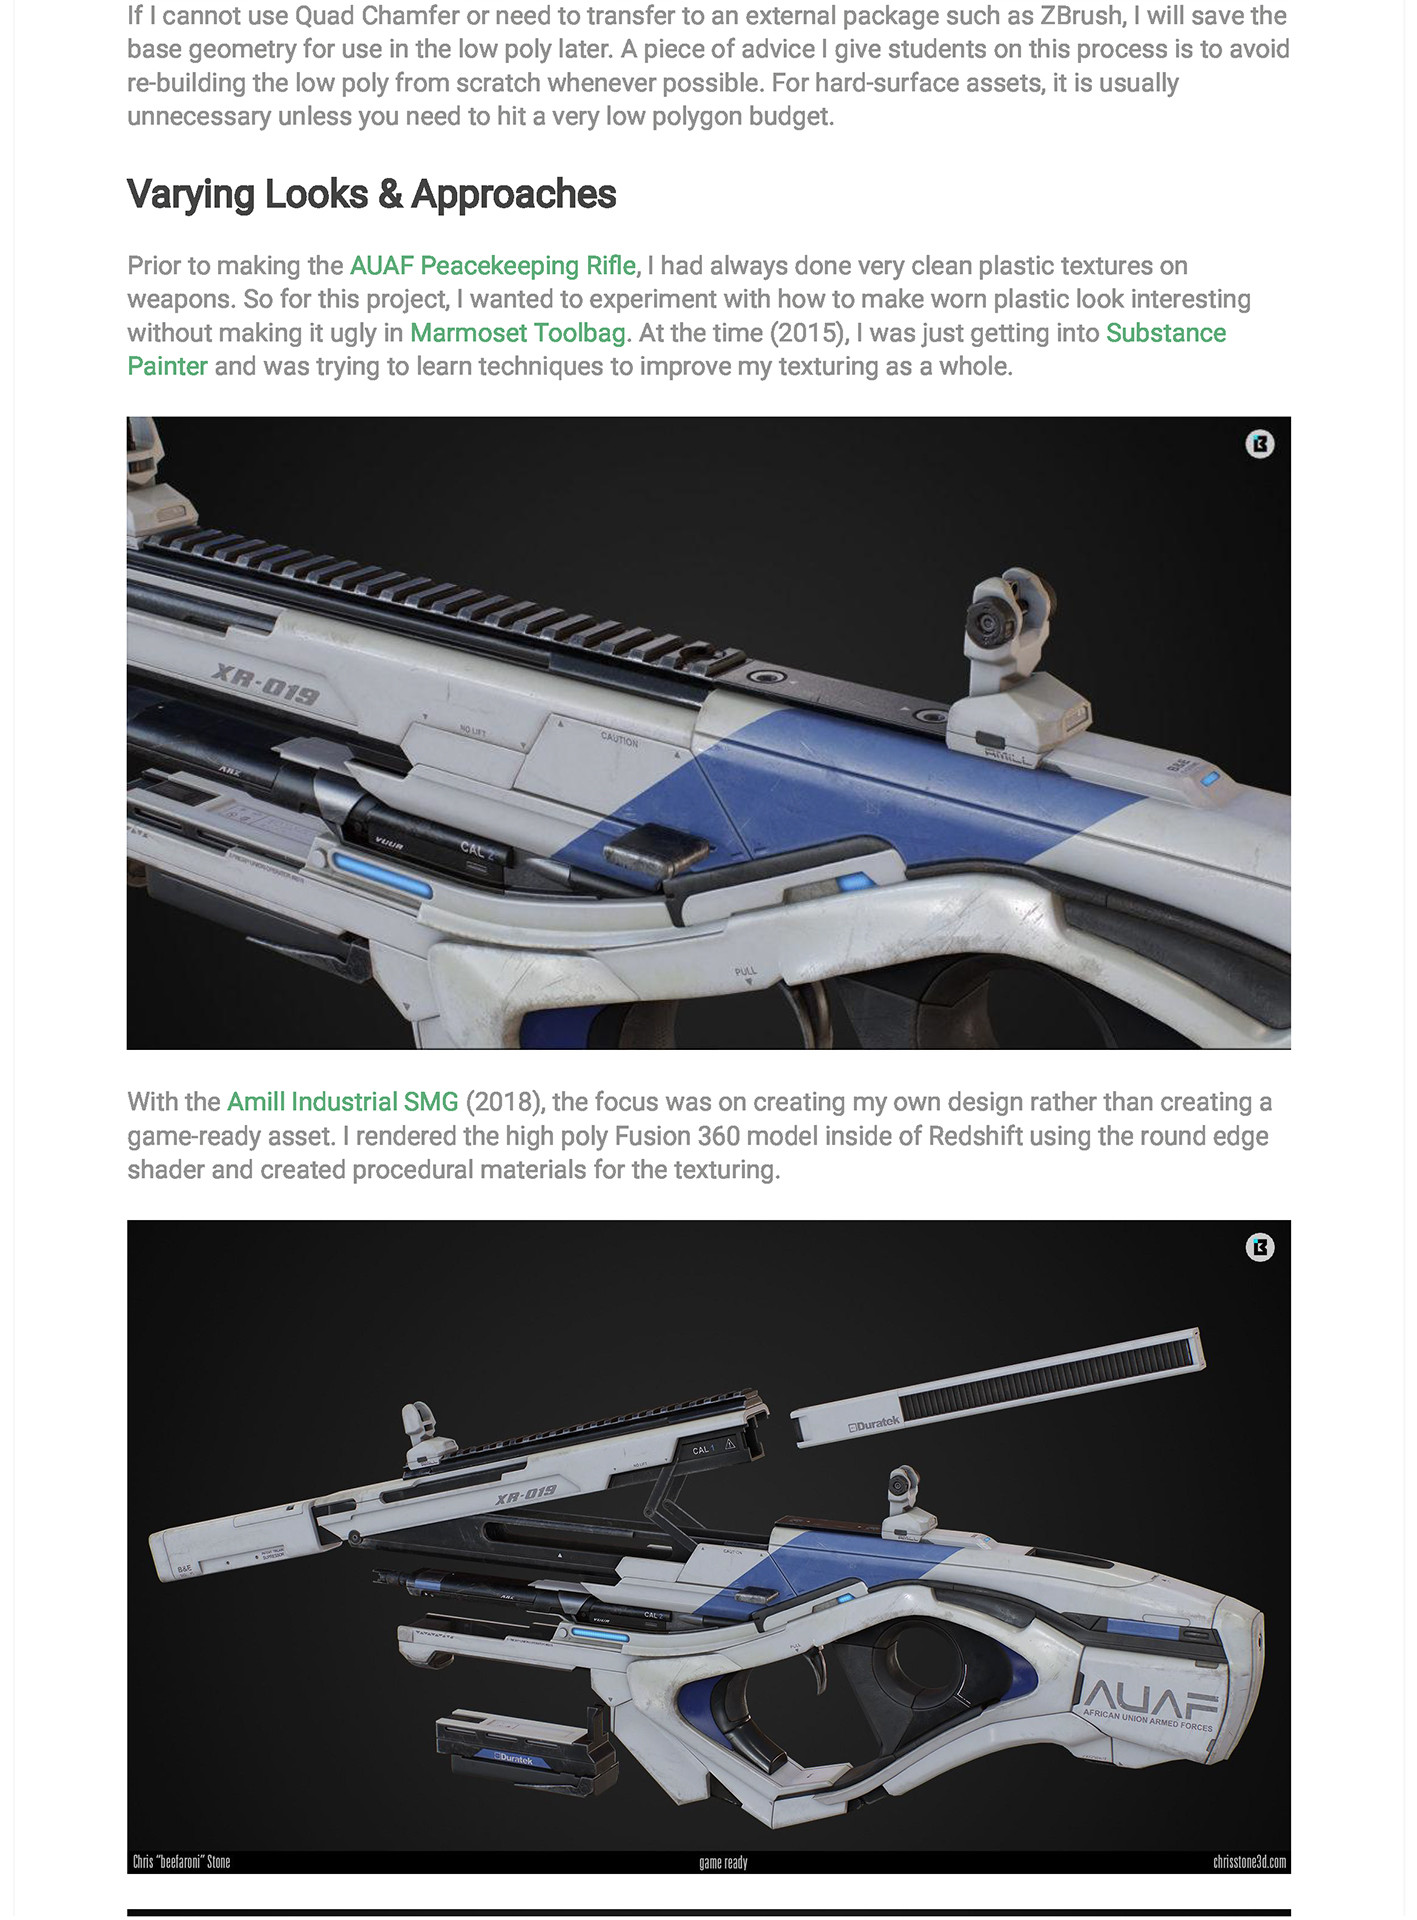 Chris stone experimenting with weapon design page 05